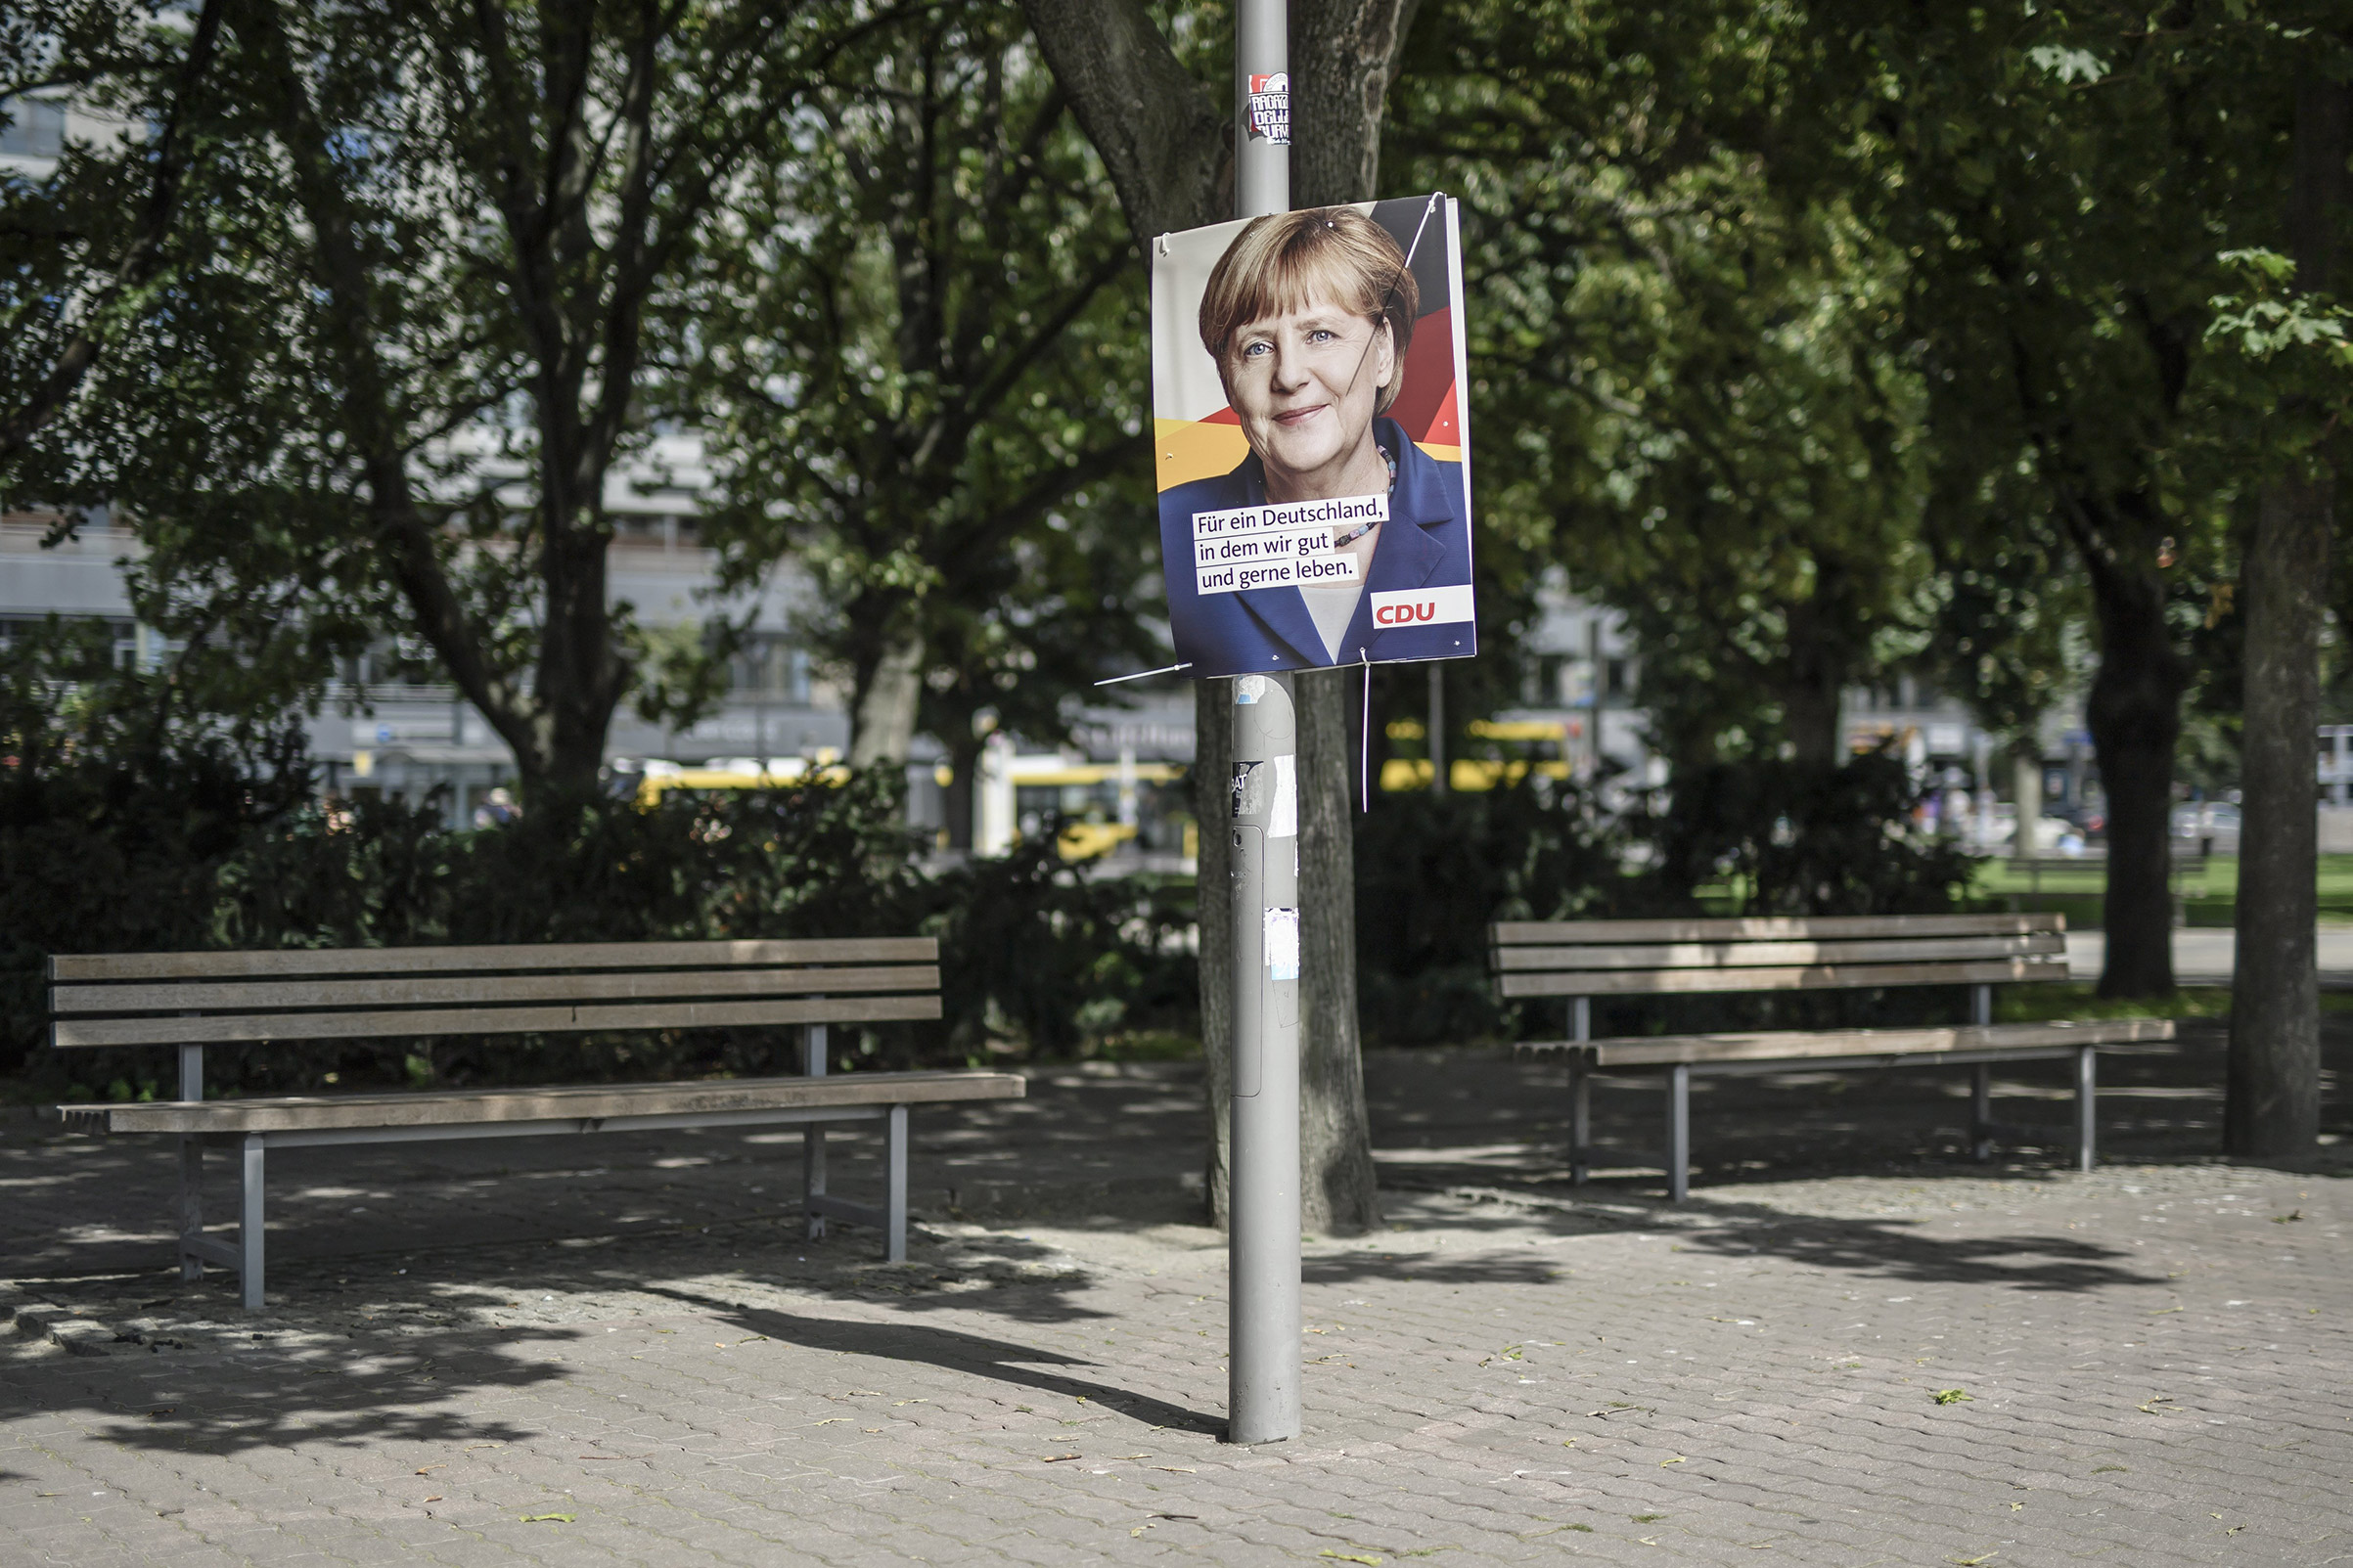 A campaign poster for Chancellor Angela Merkel in Berlin. The text reads,  For a Germany in which we live well and in which we like to live.